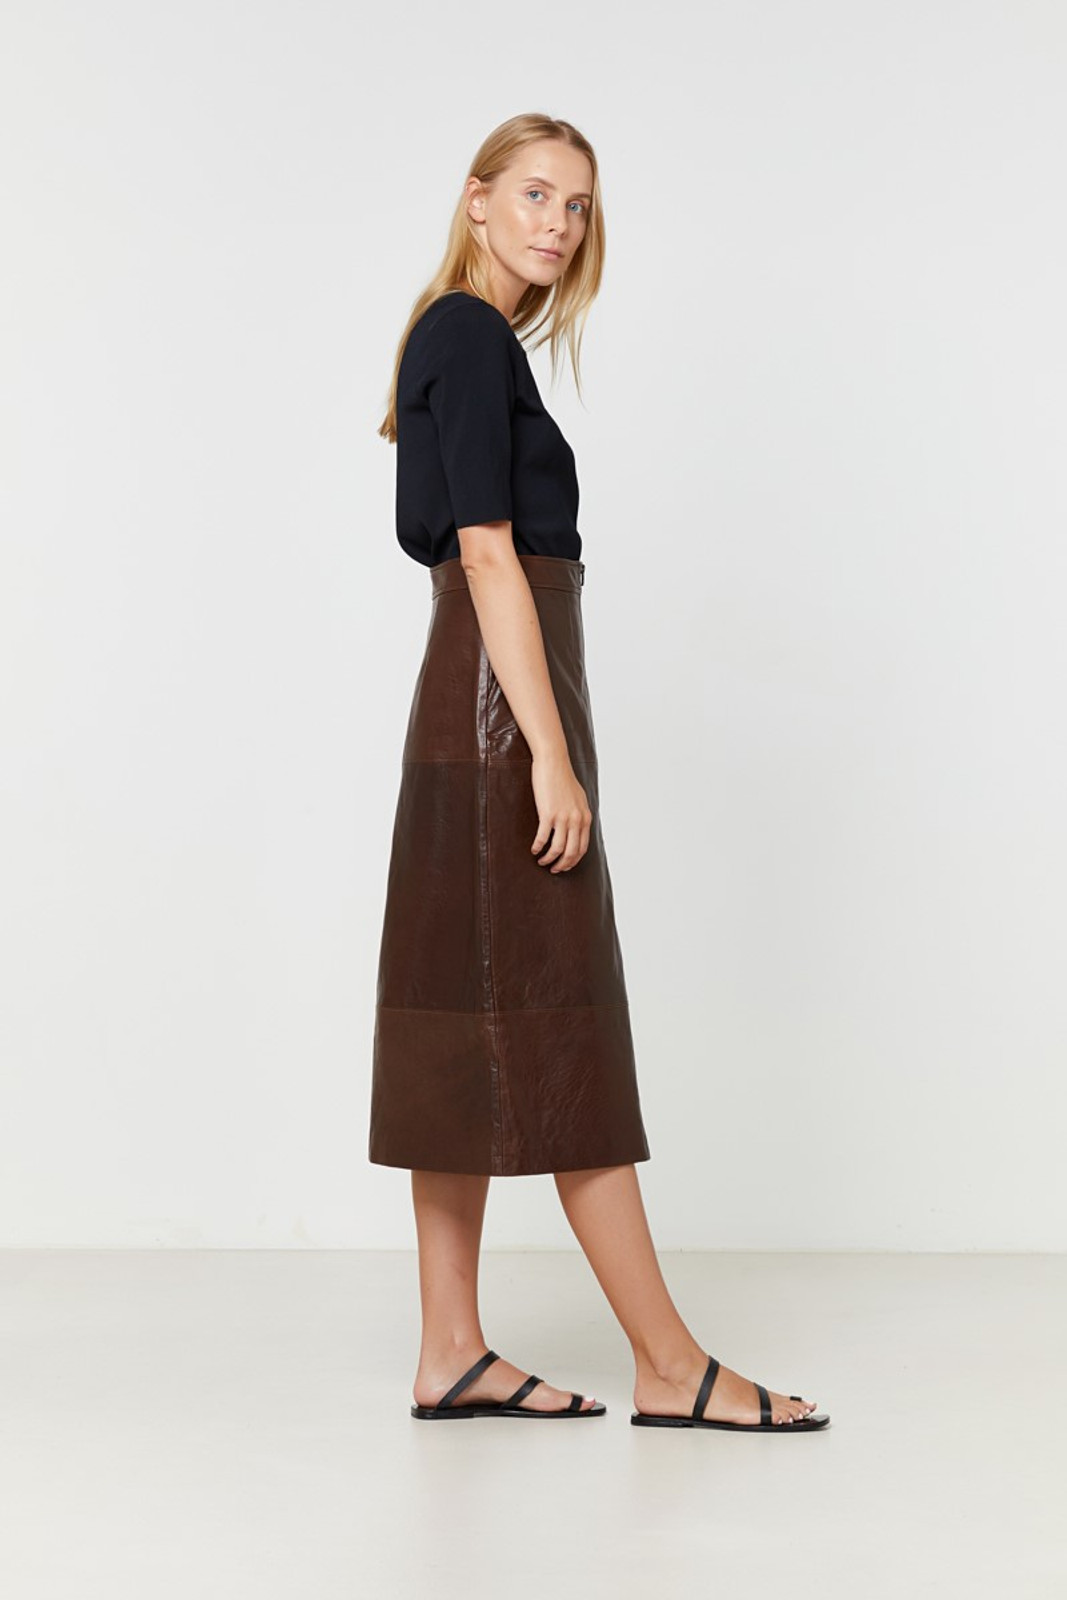 Elka Collective Jude Leather Skirt Brown  7